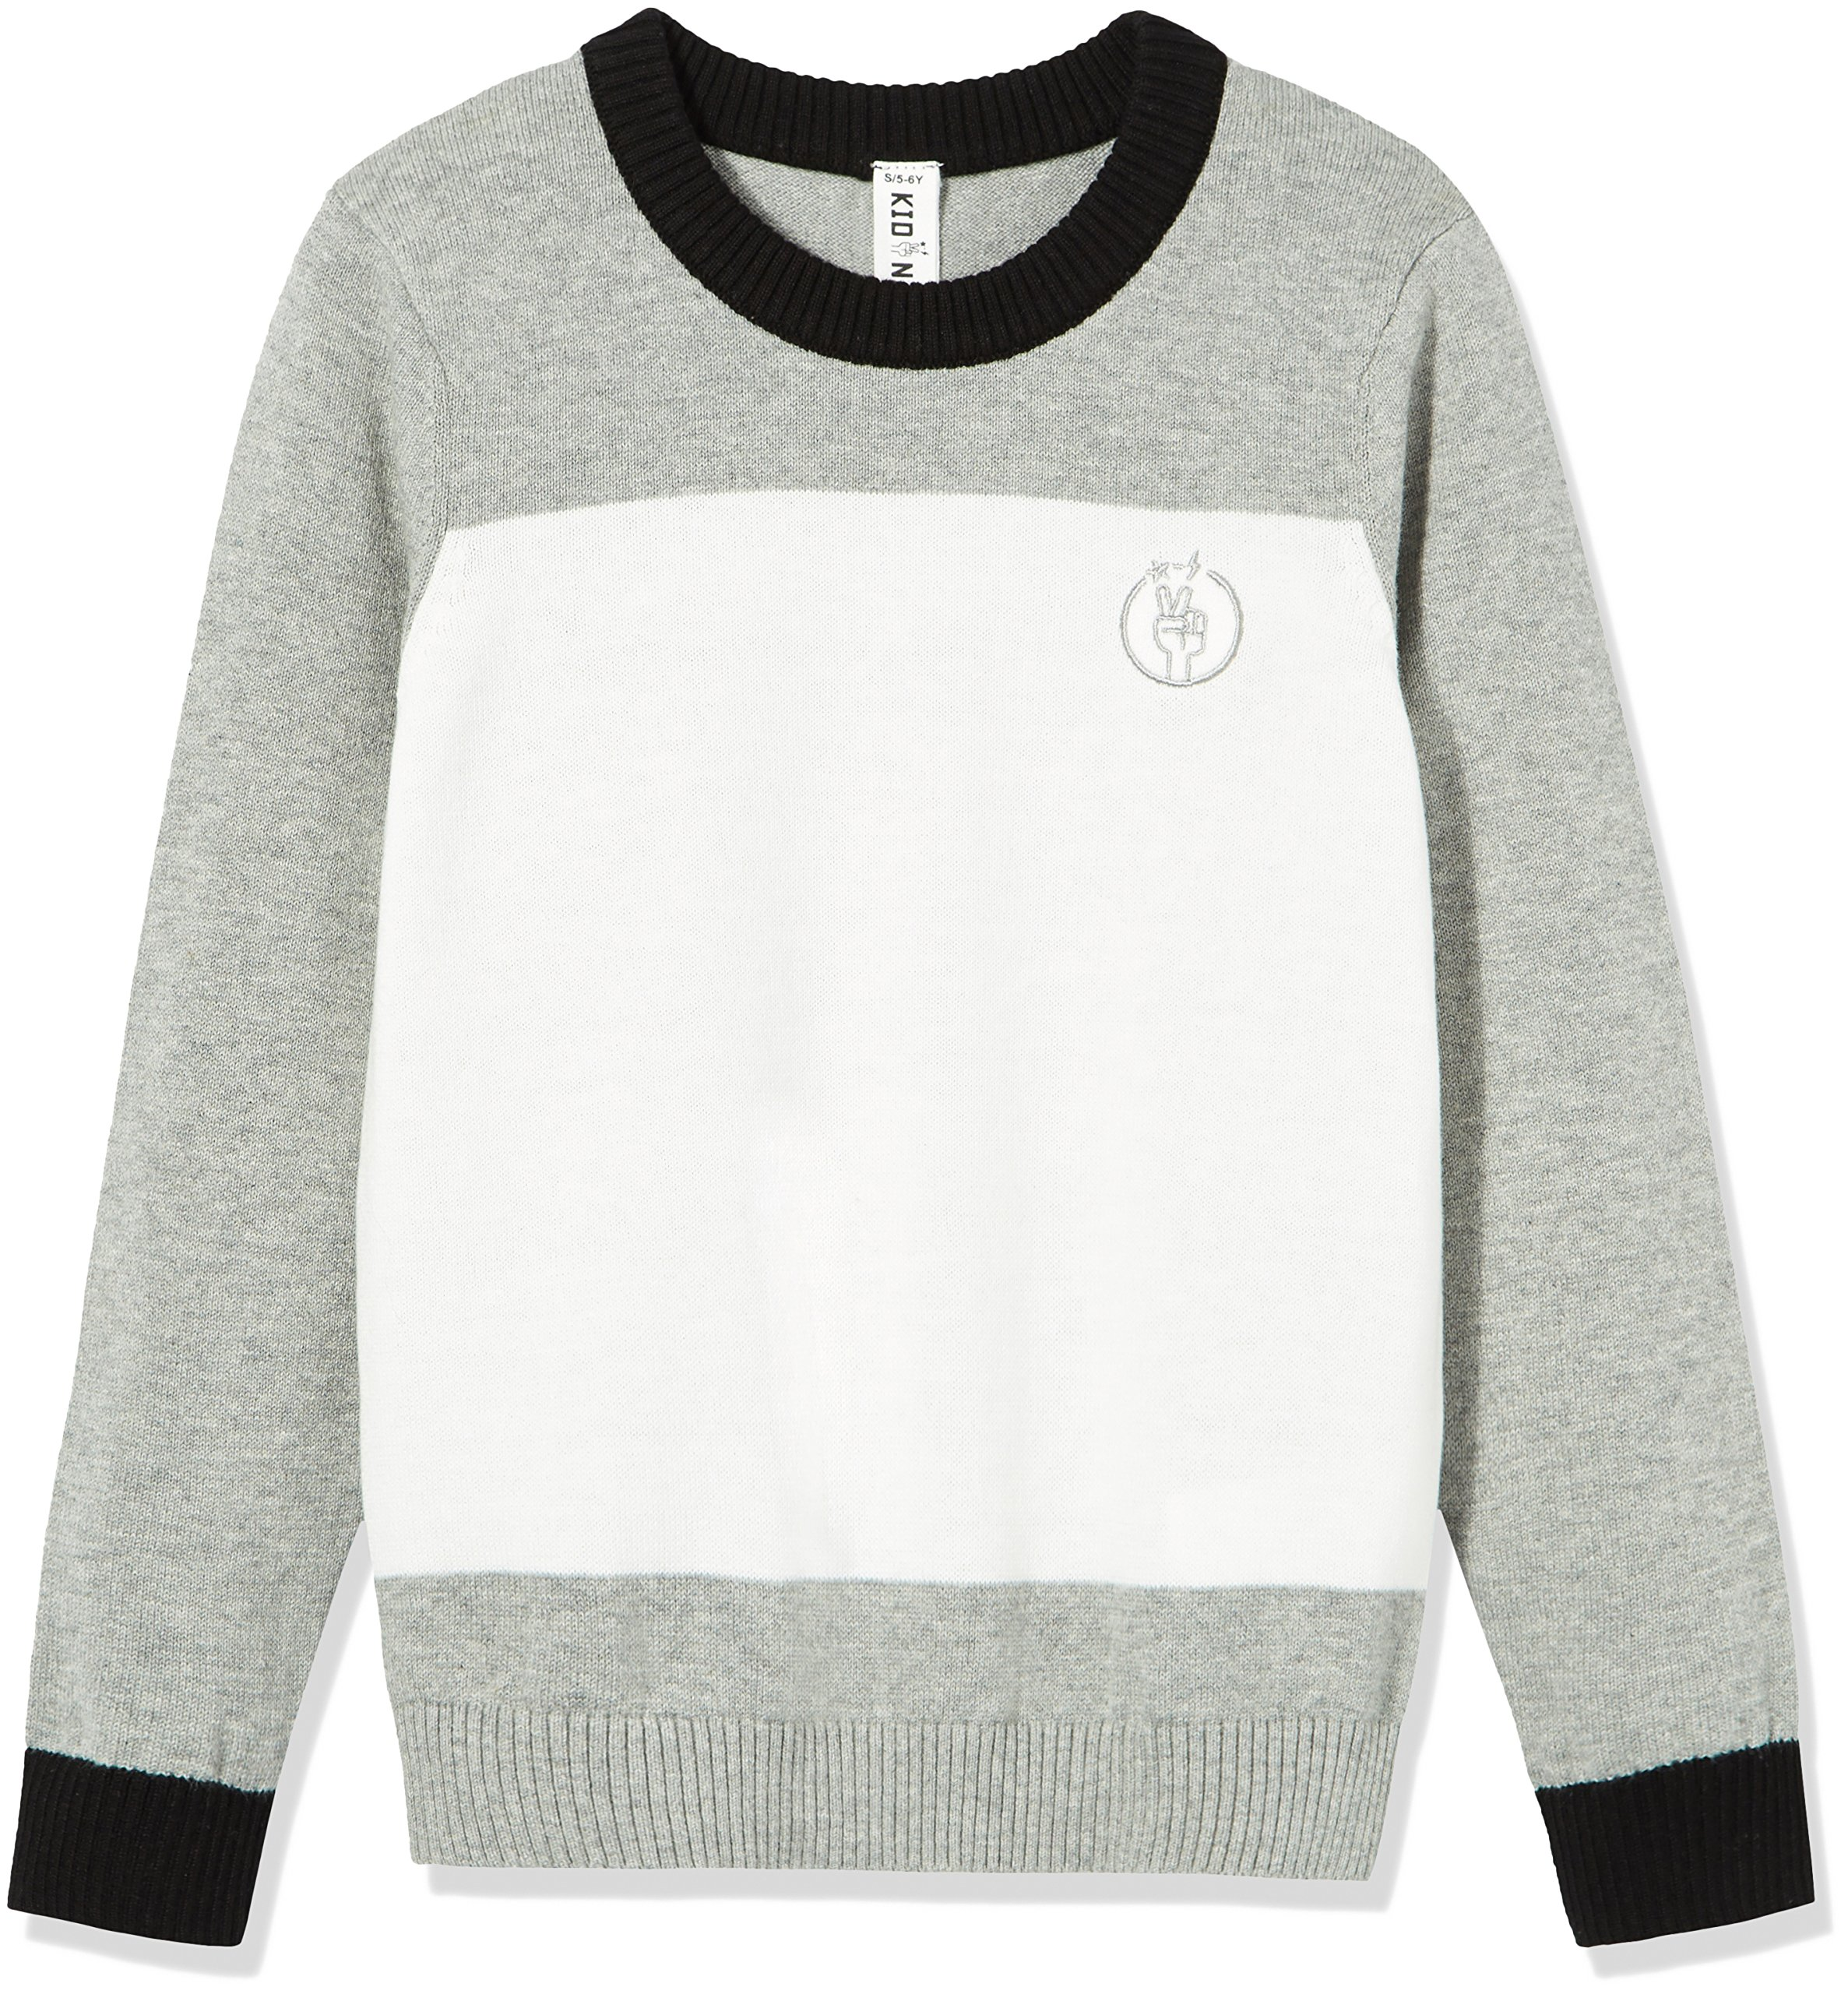 Kid Nation Kids'' Long Sleeve Color Blocked Sweater for Boys or Girls M Grey